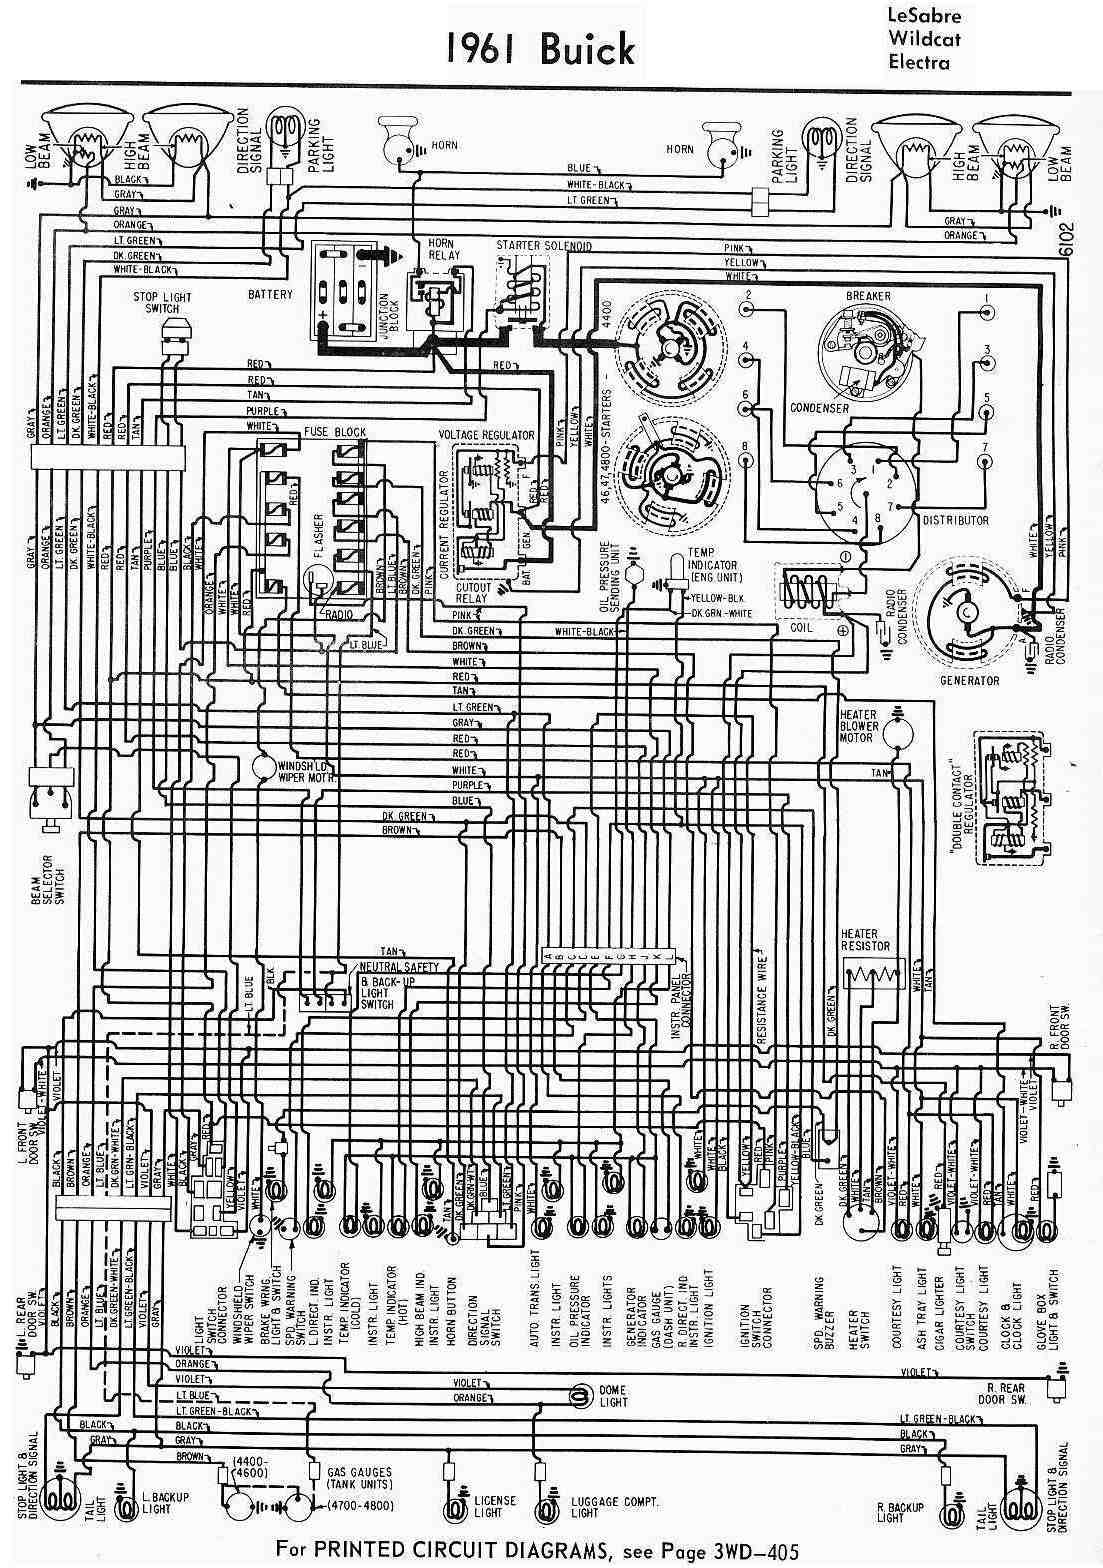 1961 chrysler wiring diagram wiring diagrams posts 1961 chrysler wiring diagram [ 1103 x 1568 Pixel ]